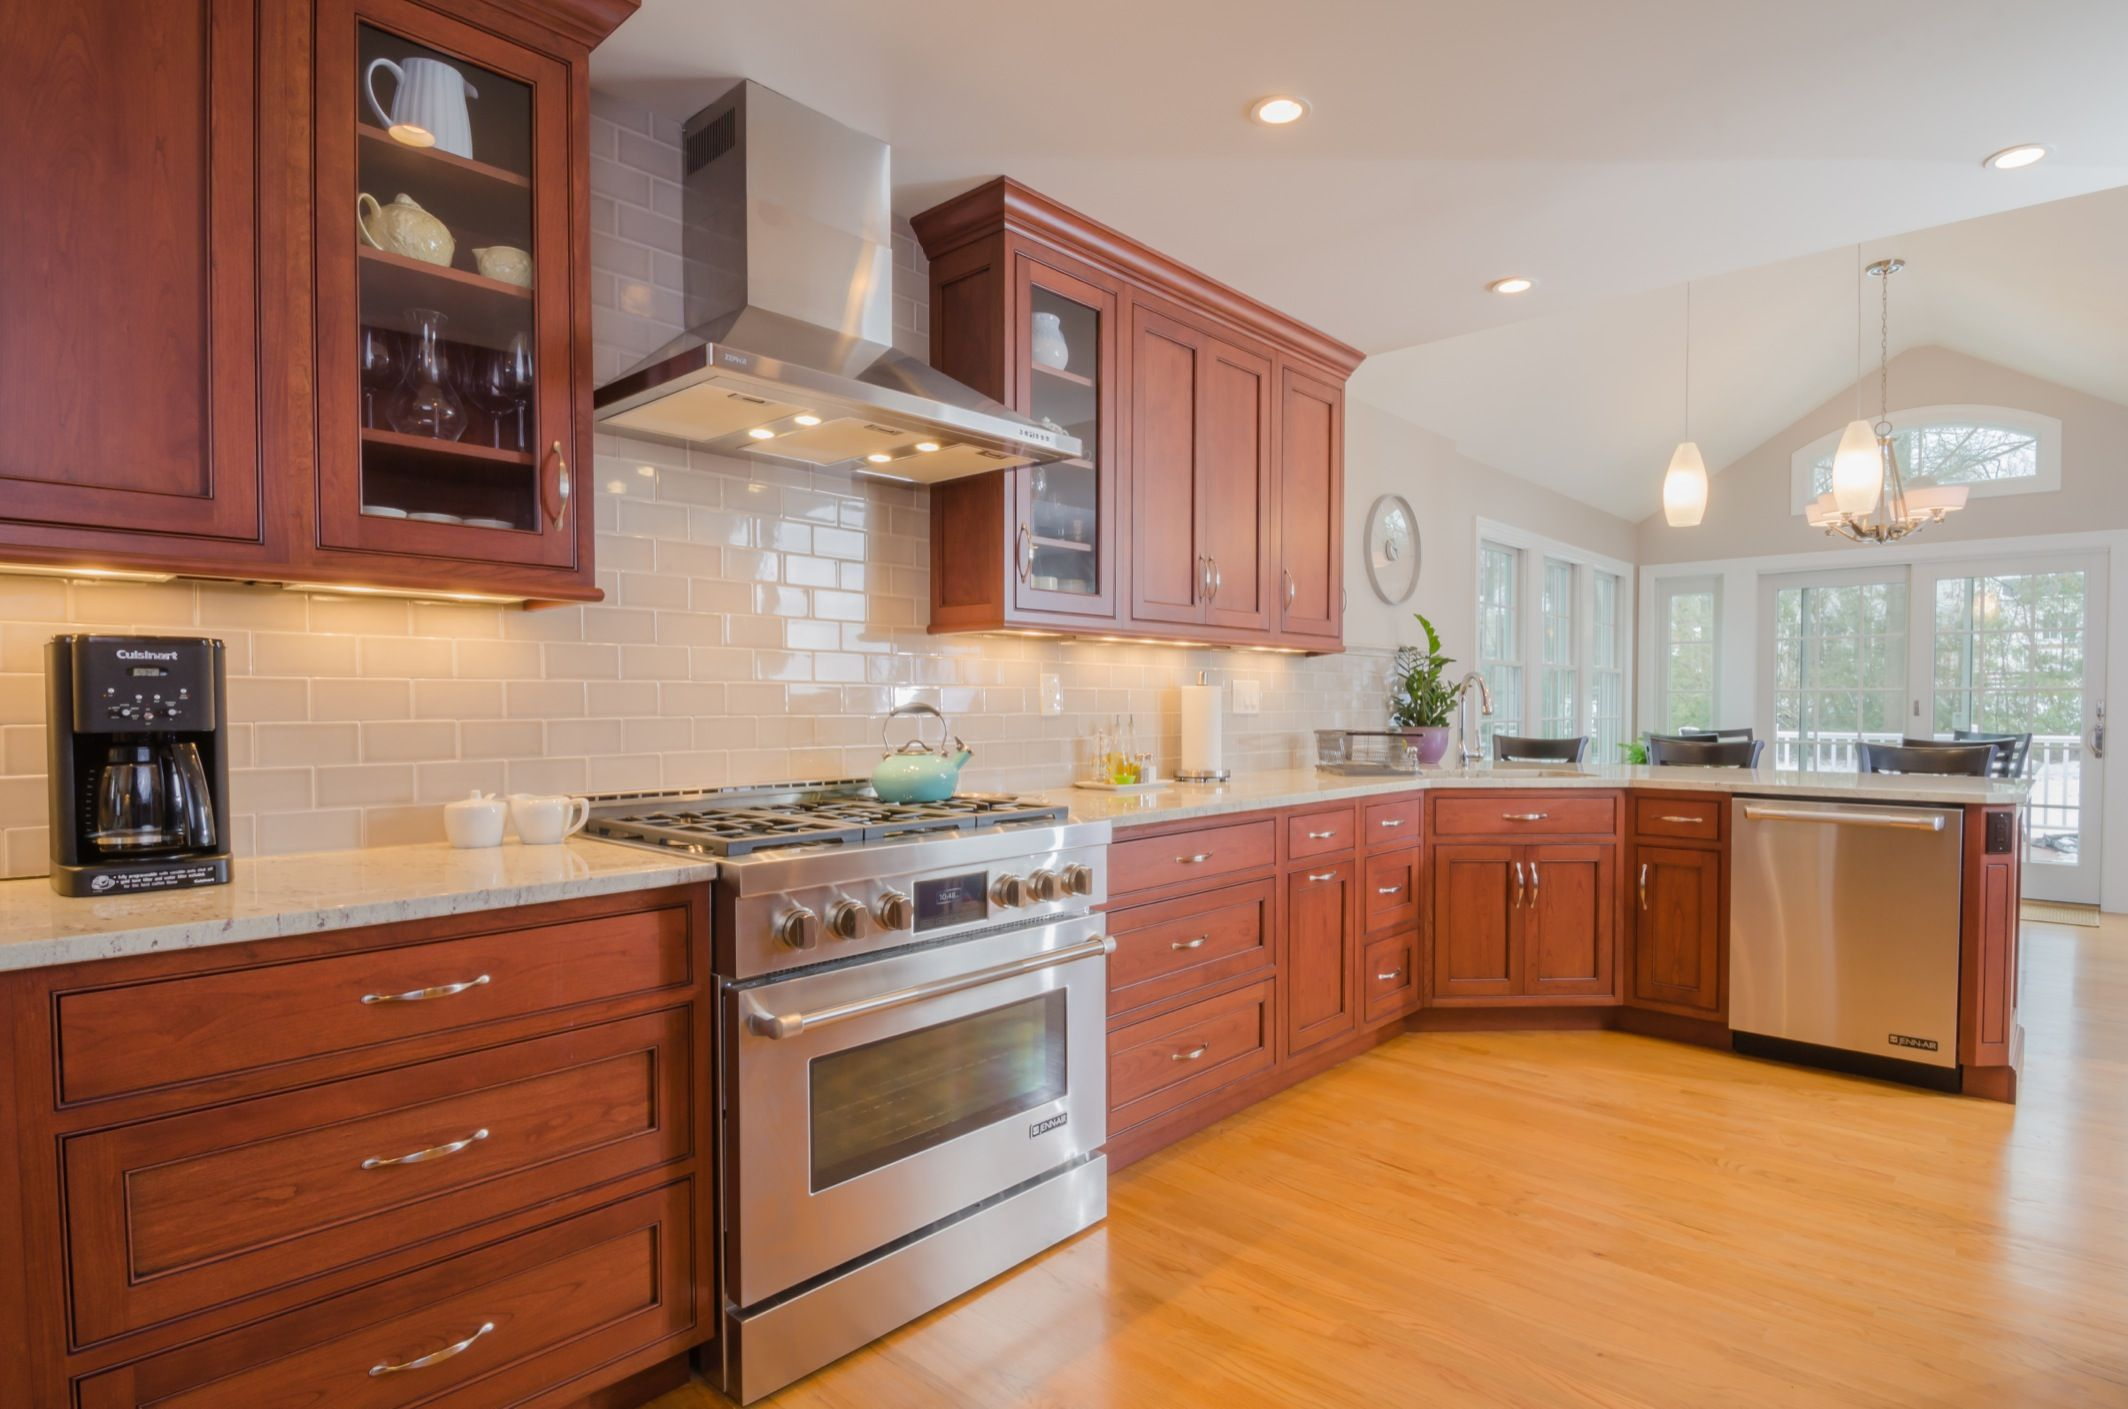 Off white subway tile and simple pattern granite or marble